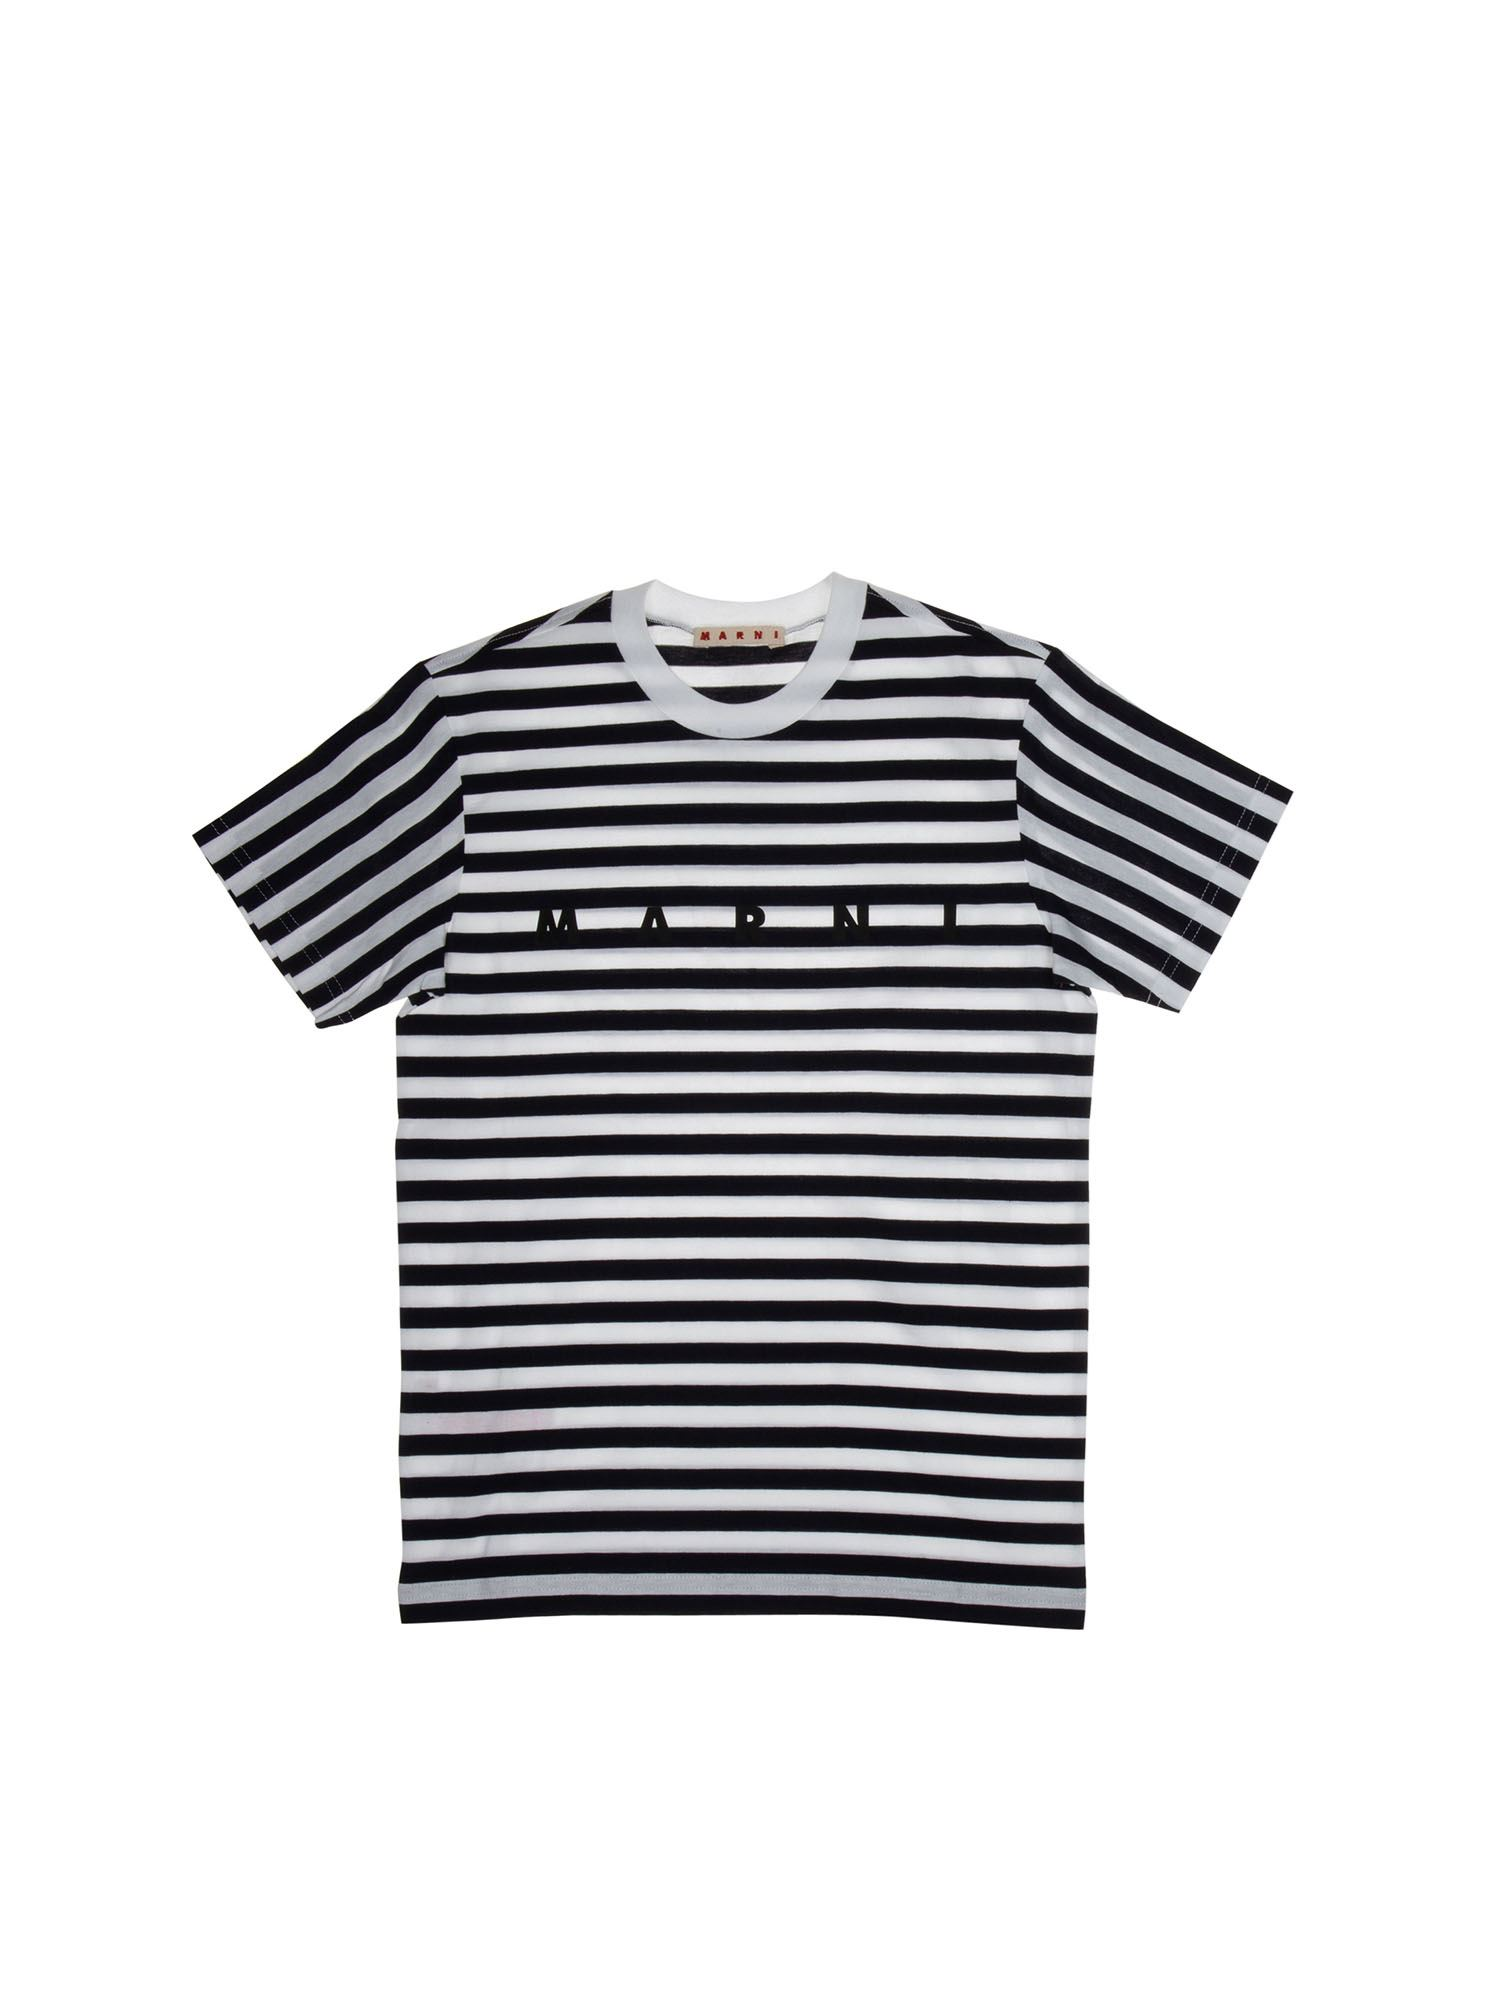 Marni Cottons KIDS STRIPED T-SHIRT IN BLUE AND WHITE